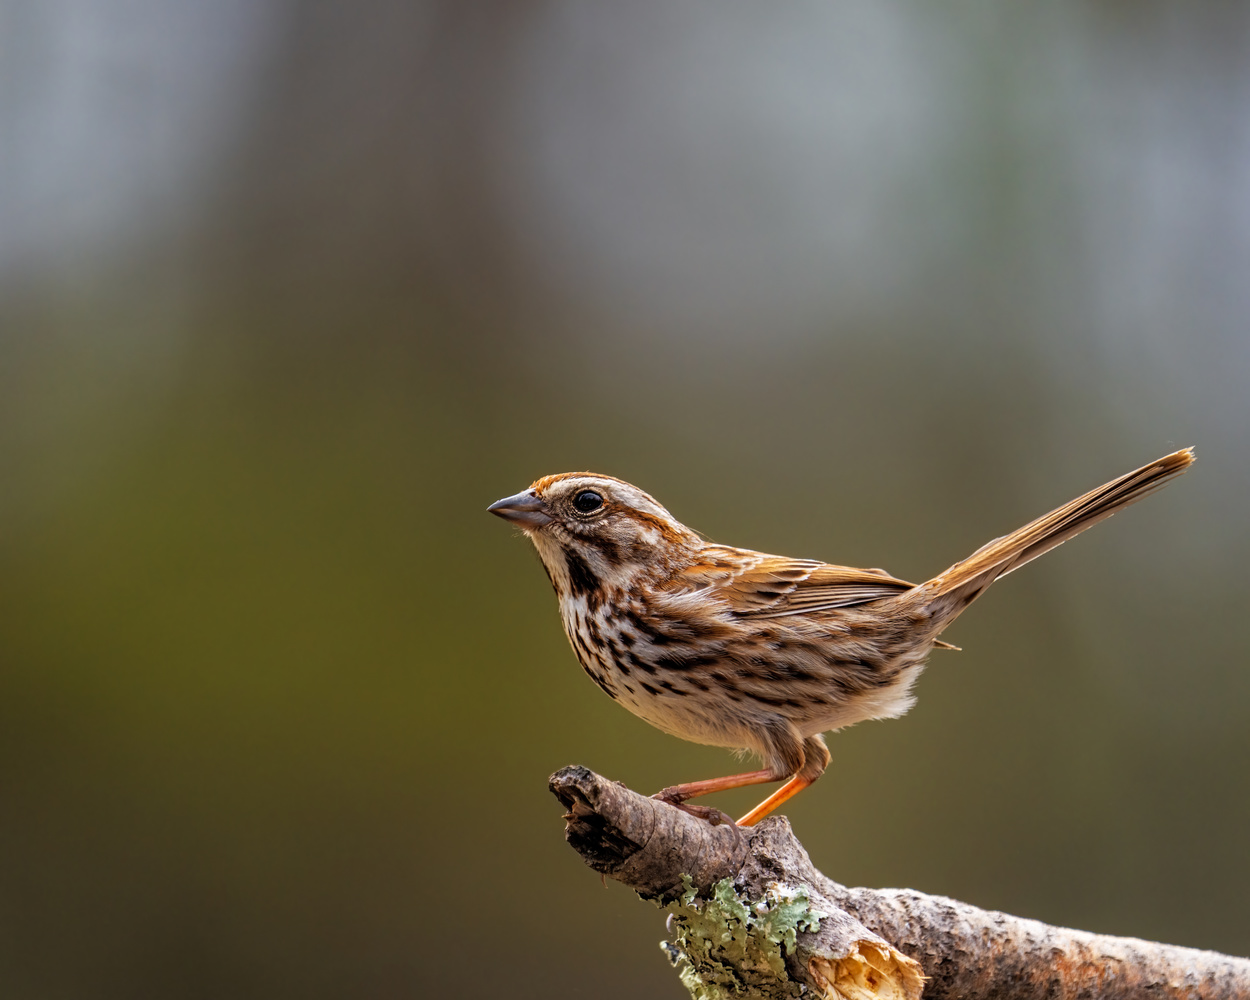 Song Sparrow by Skyler Ewing